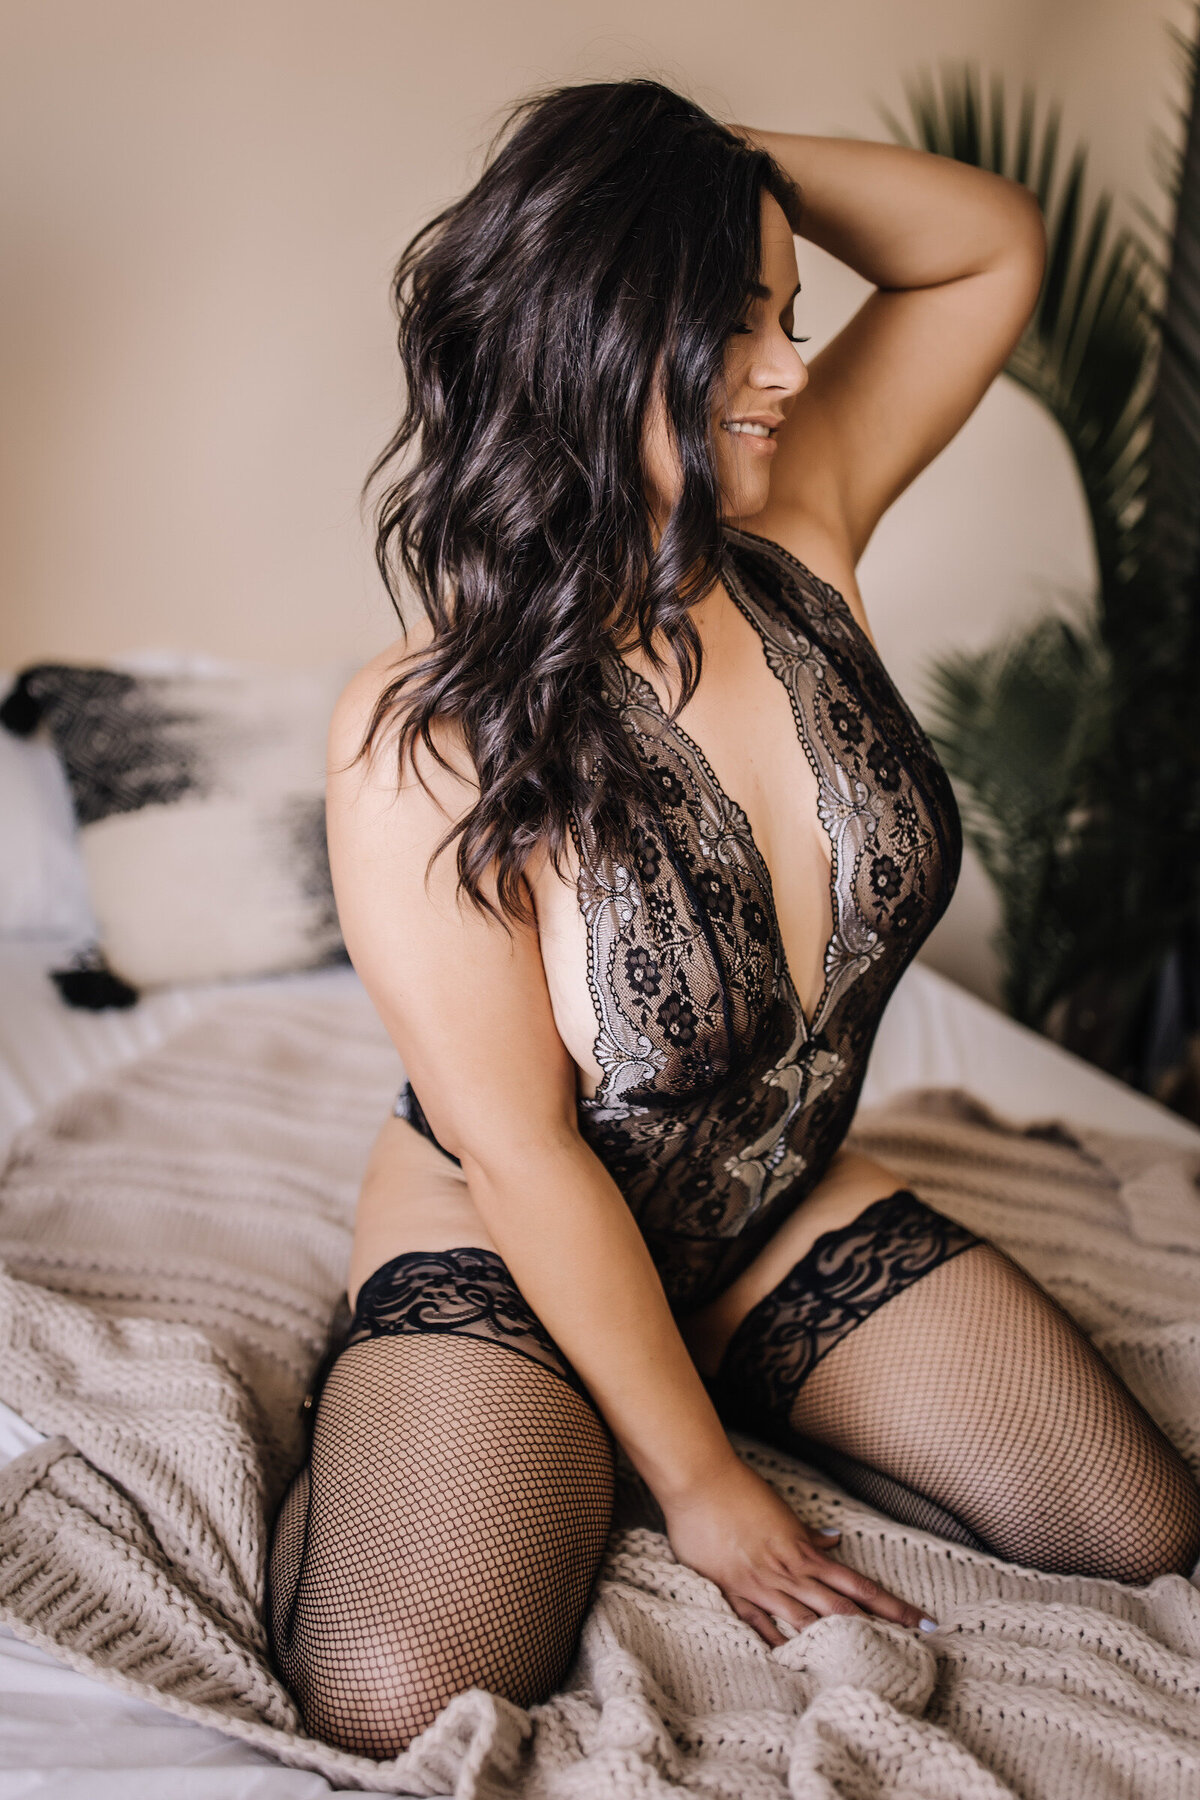 Angel_BoudoirSession-83